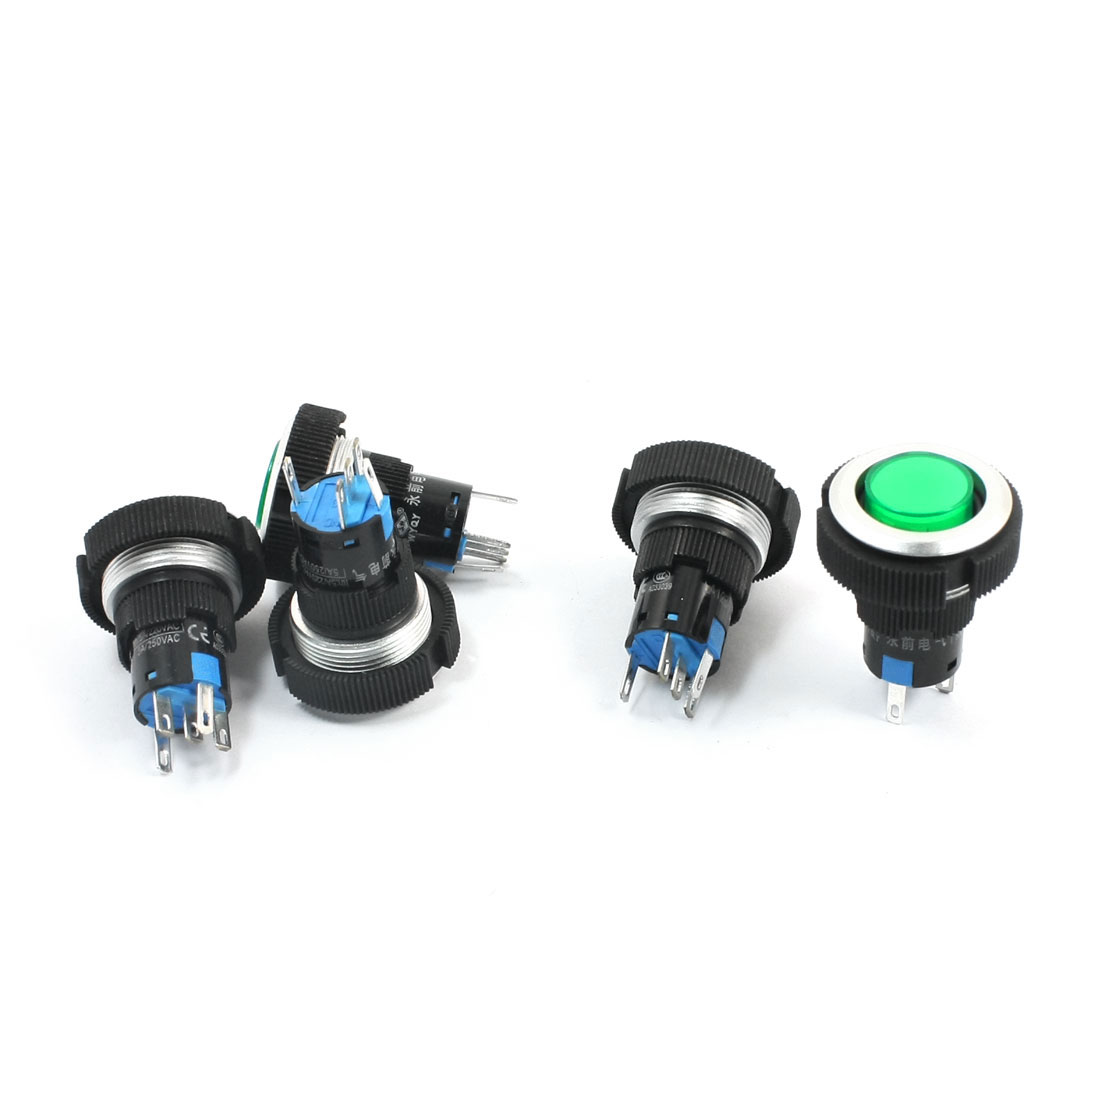 5Pcs 24V 22mm Thread Panel Mount SPDT 1NO 1NC 5Pin Soldering Momentary Action Green Light Push Button Switch